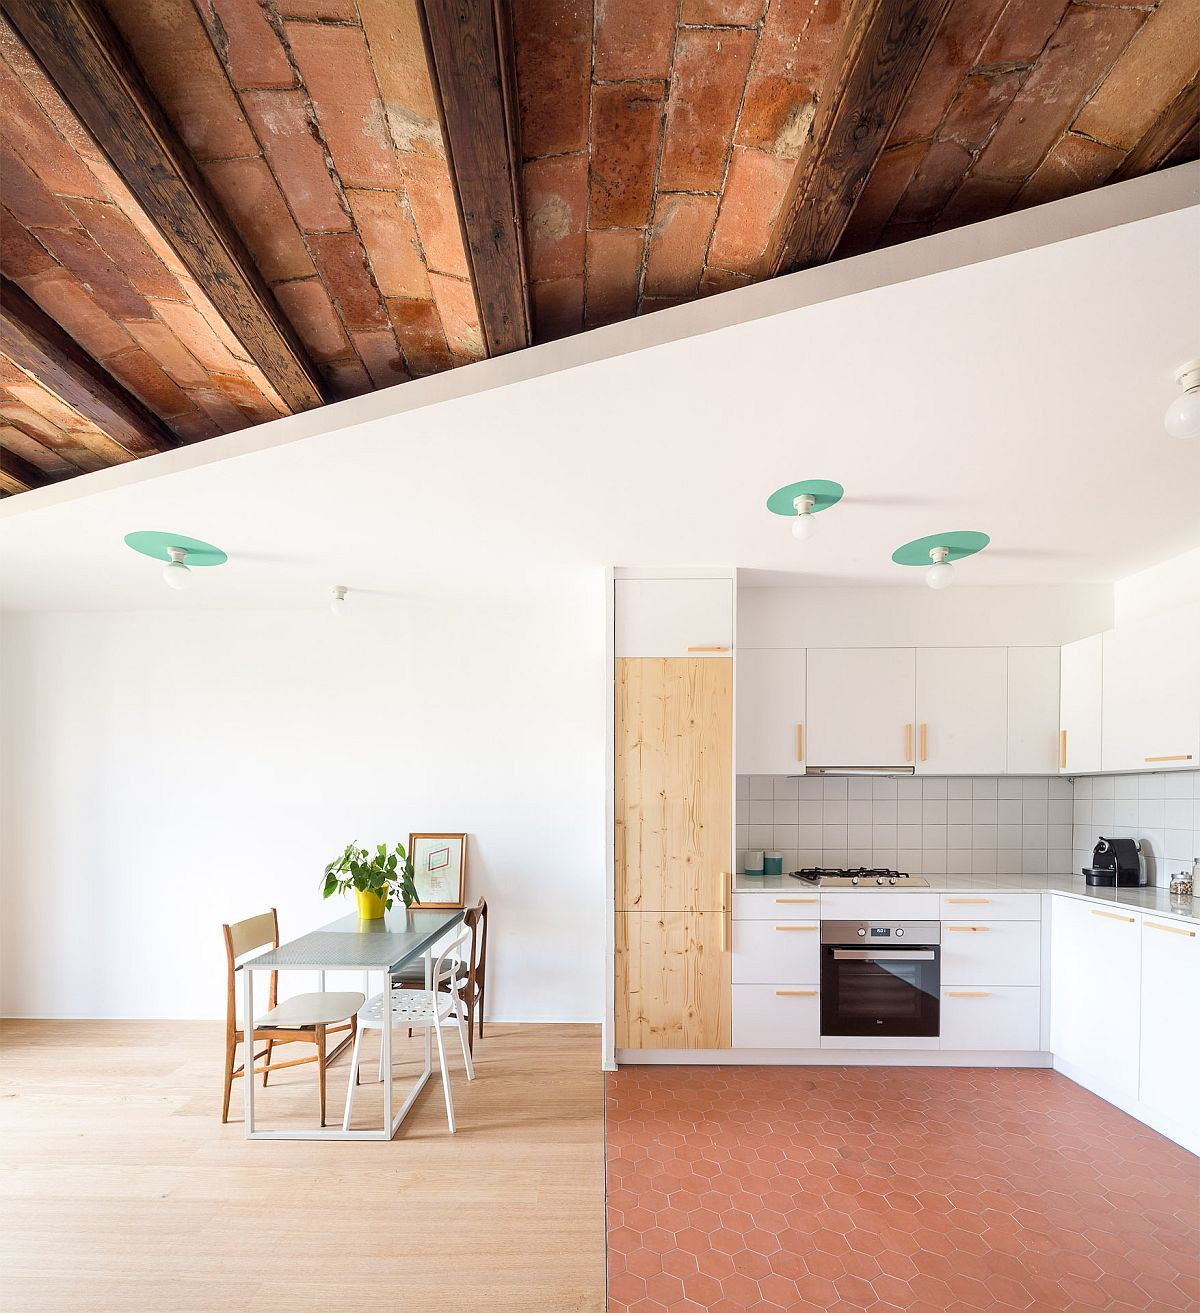 Variety of different materials and finishes find space inside the apartment